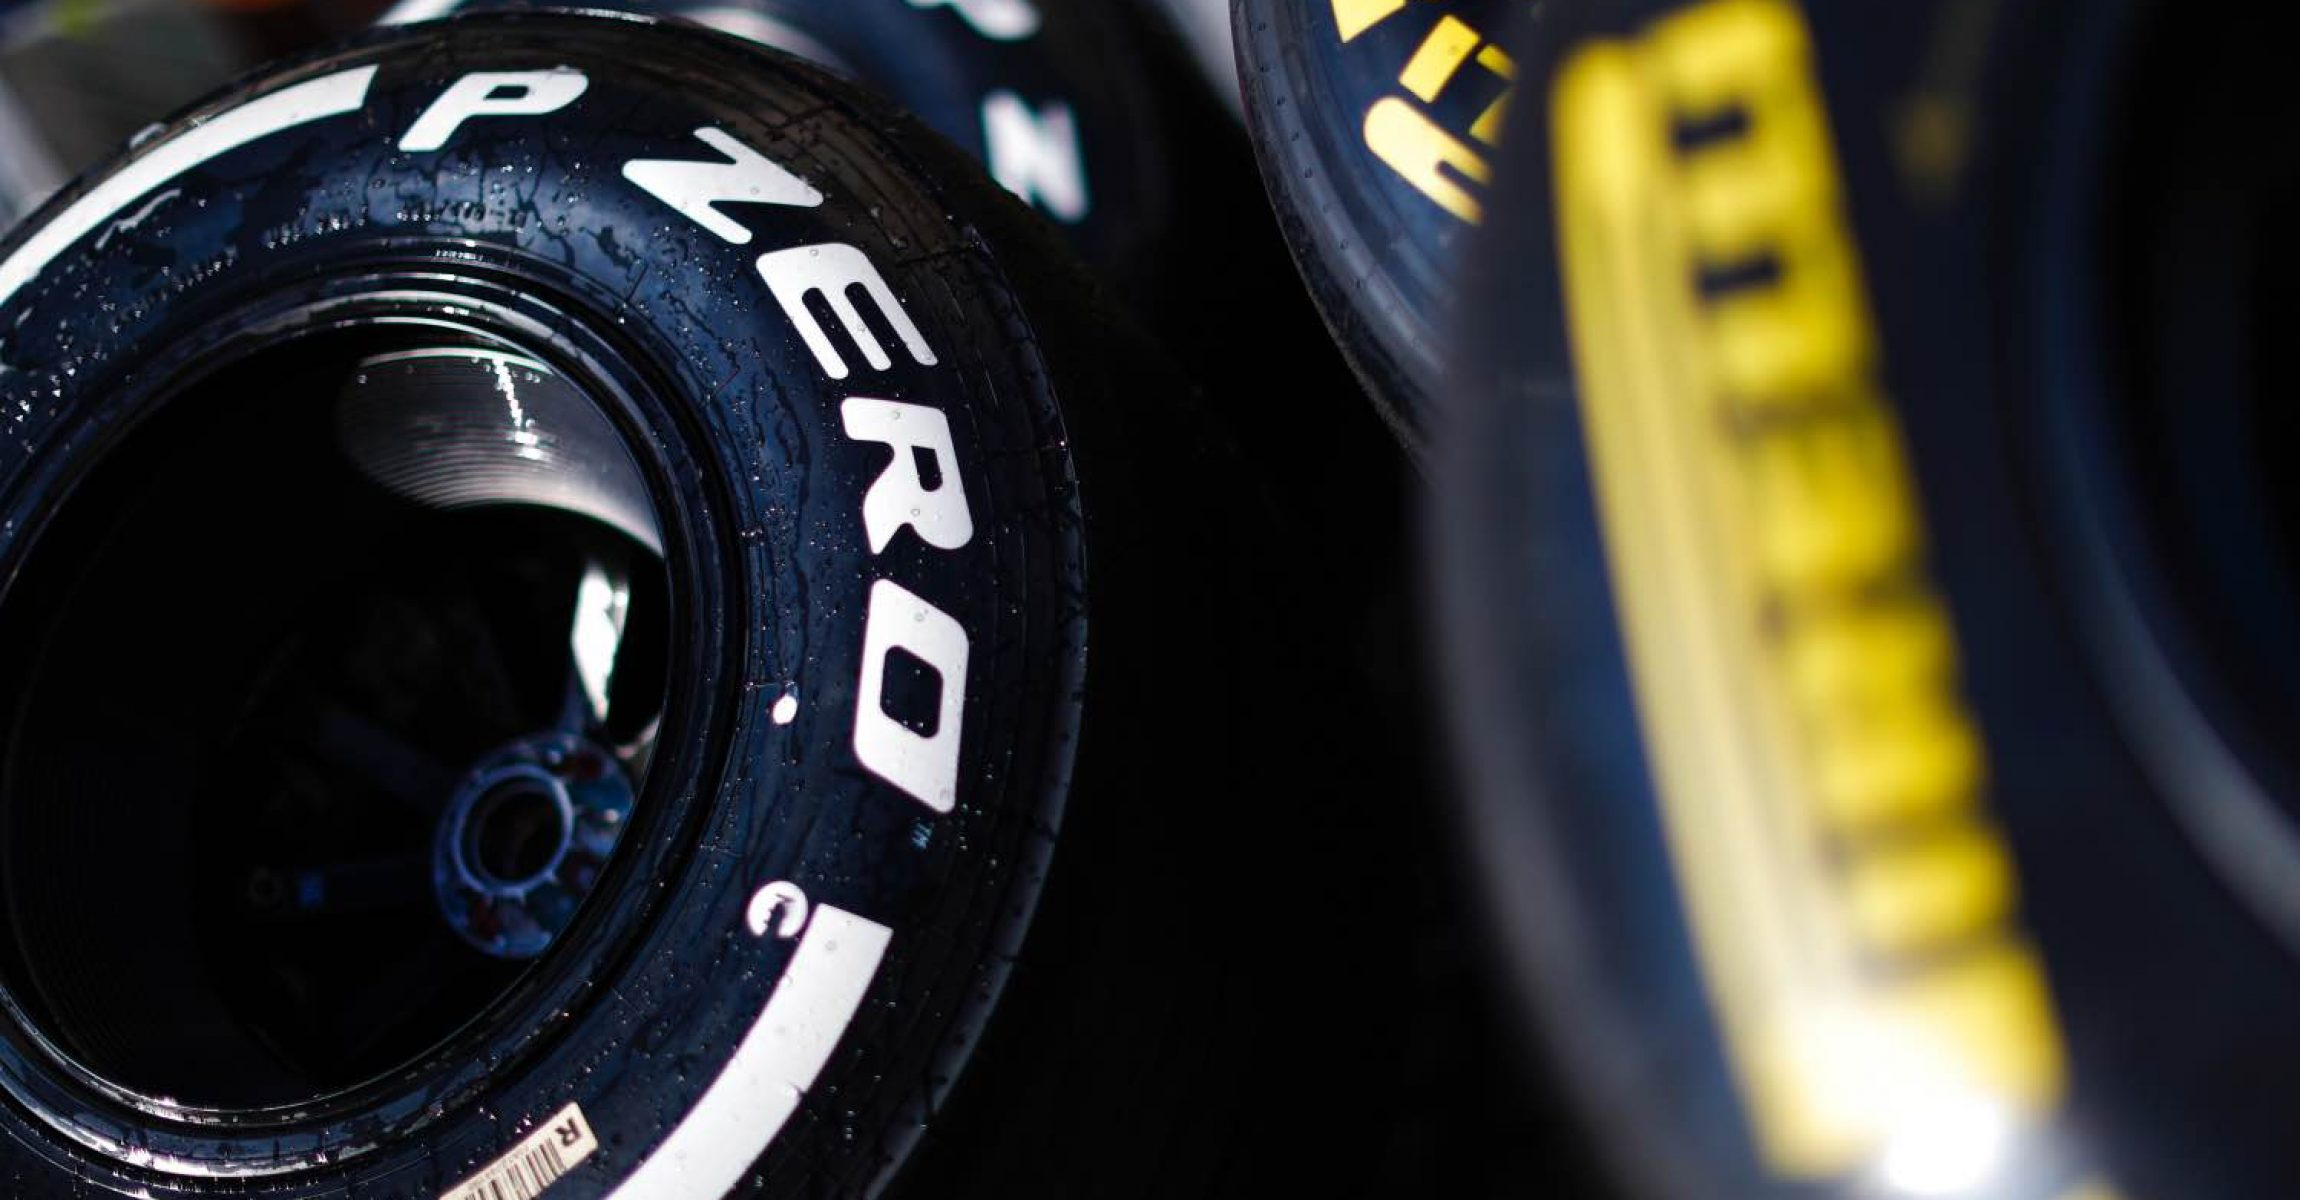 YAS MARINA CIRCUIT, UNITED ARAB EMIRATES - NOVEMBER 28: Pirelli tyres in the paddock during the Test Days at Yas Marina Circuit on November 28, 2018 in Yas Marina Circuit, United Arab Emirates. (Photo by Zak Mauger / LAT Images)